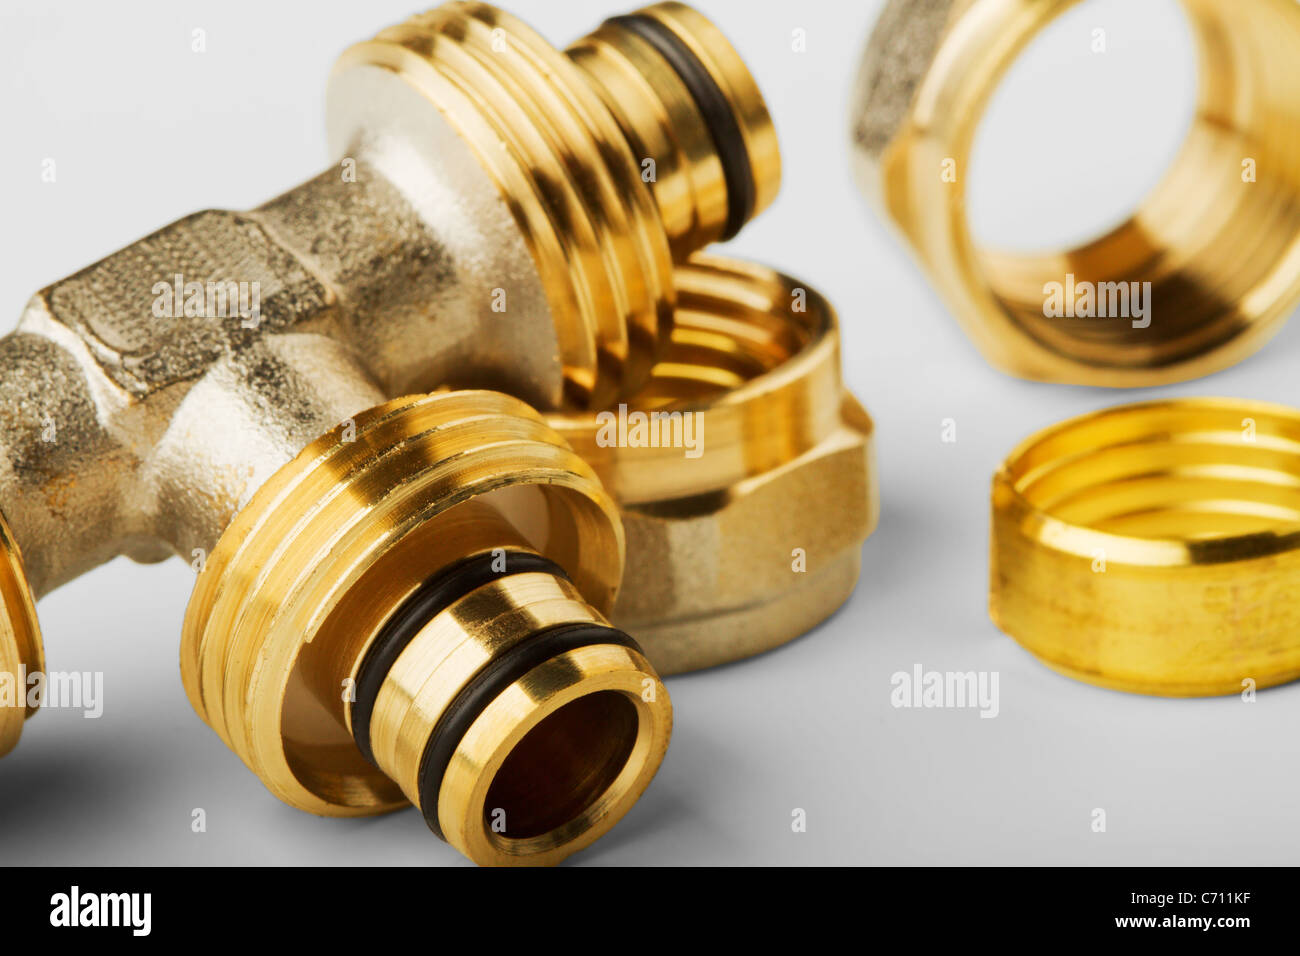 pipe fittings isolated on a white background - Stock Image